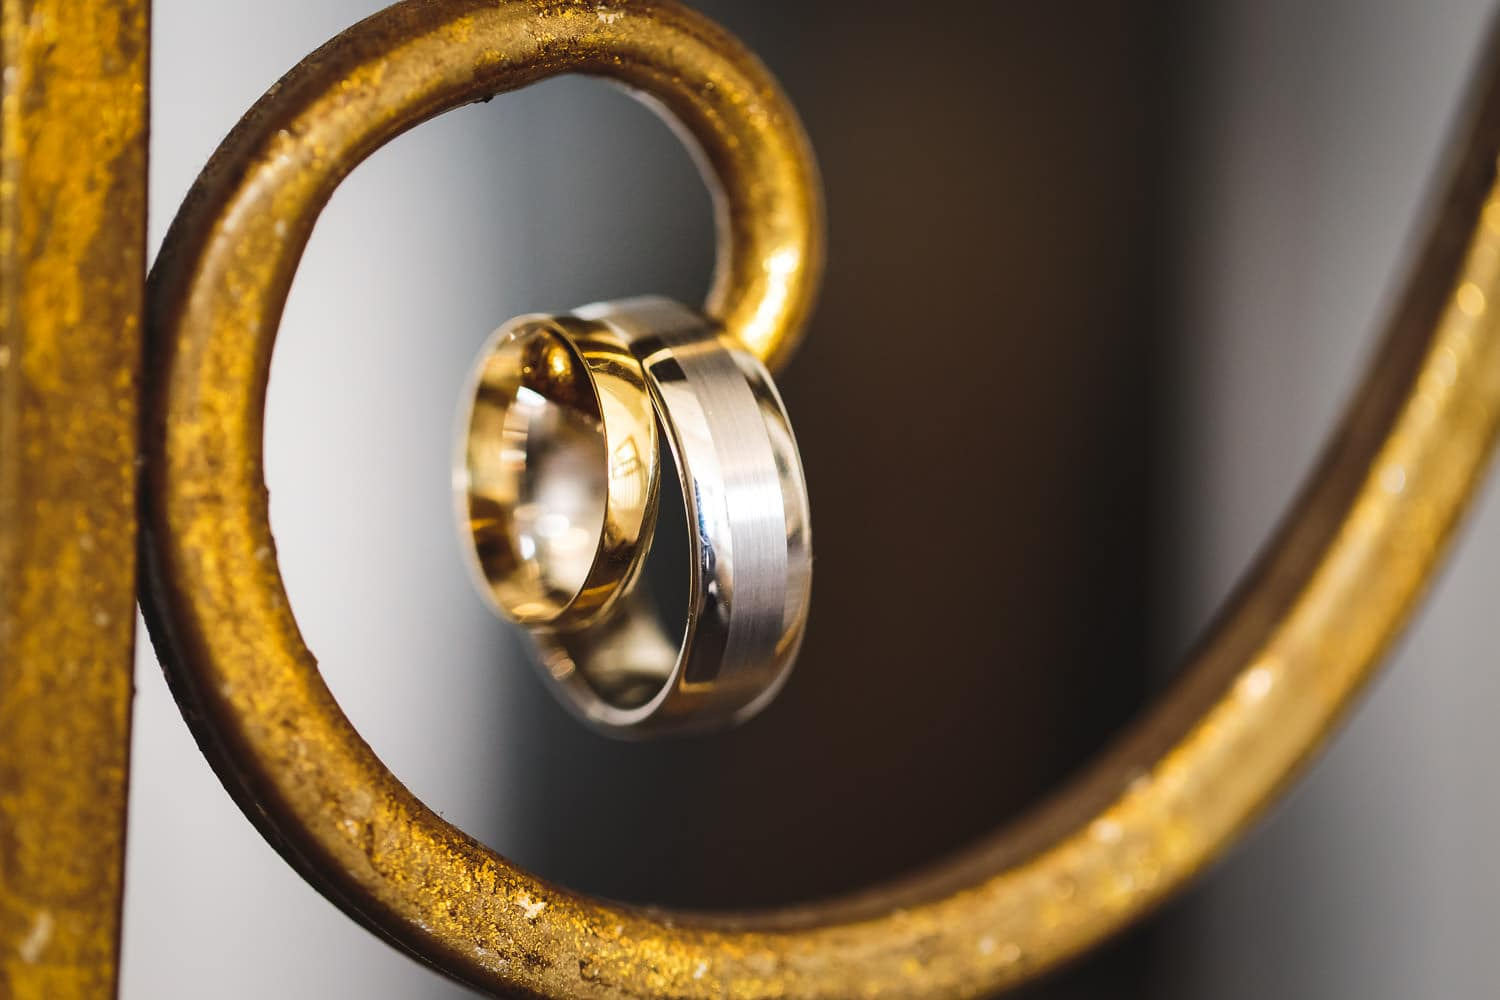 wedding rings elegantly photographed by chapter one photography at warwick house wedding venue